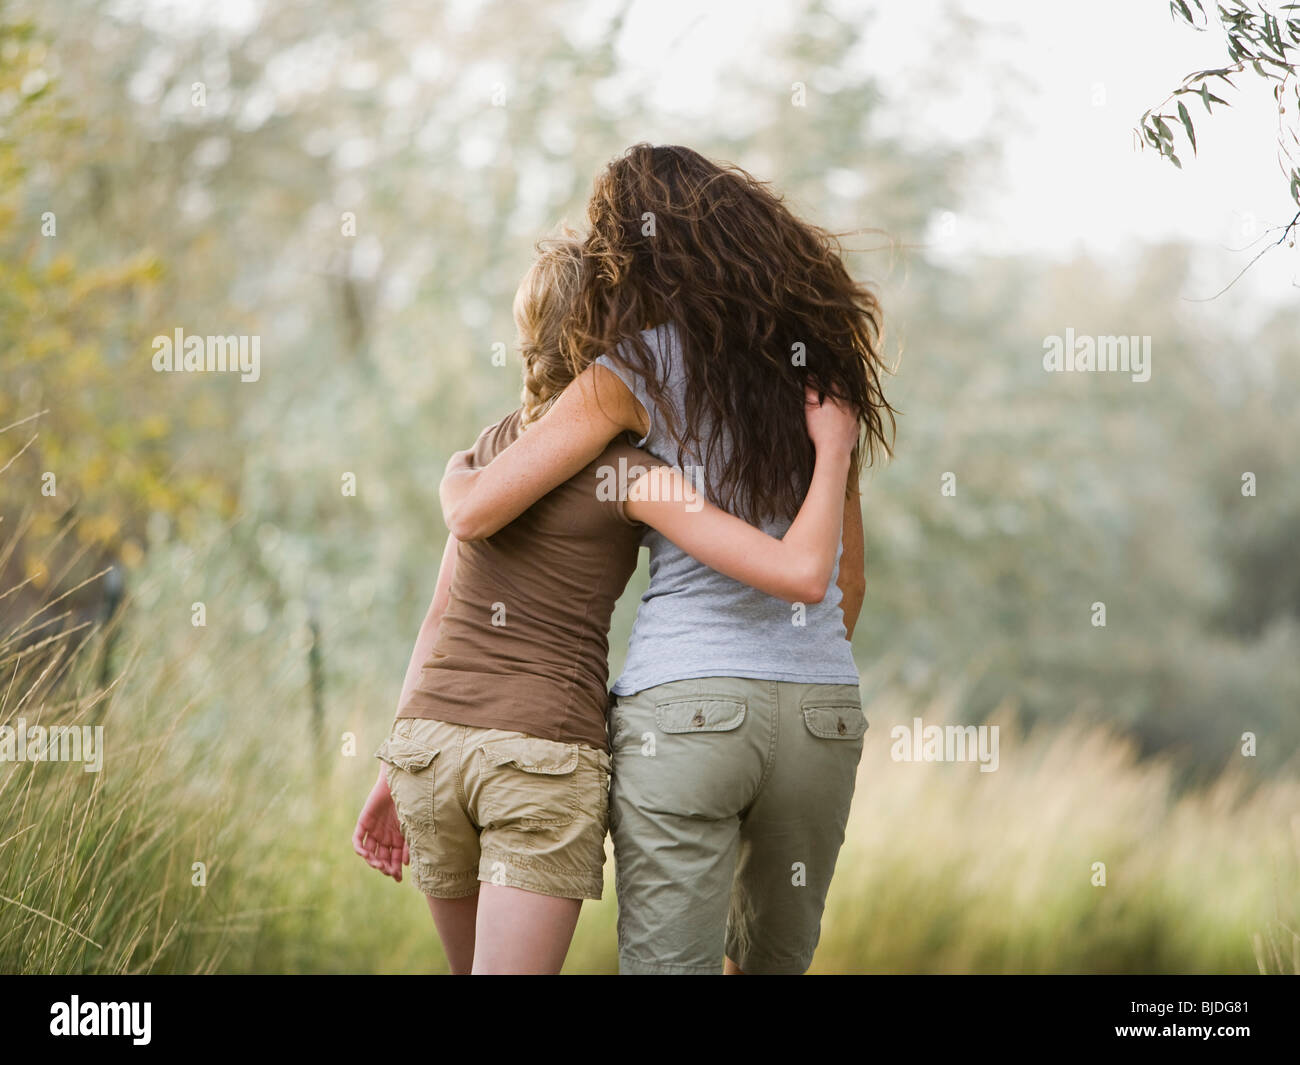 woman and young woman walking with arm around each other. - Stock Image